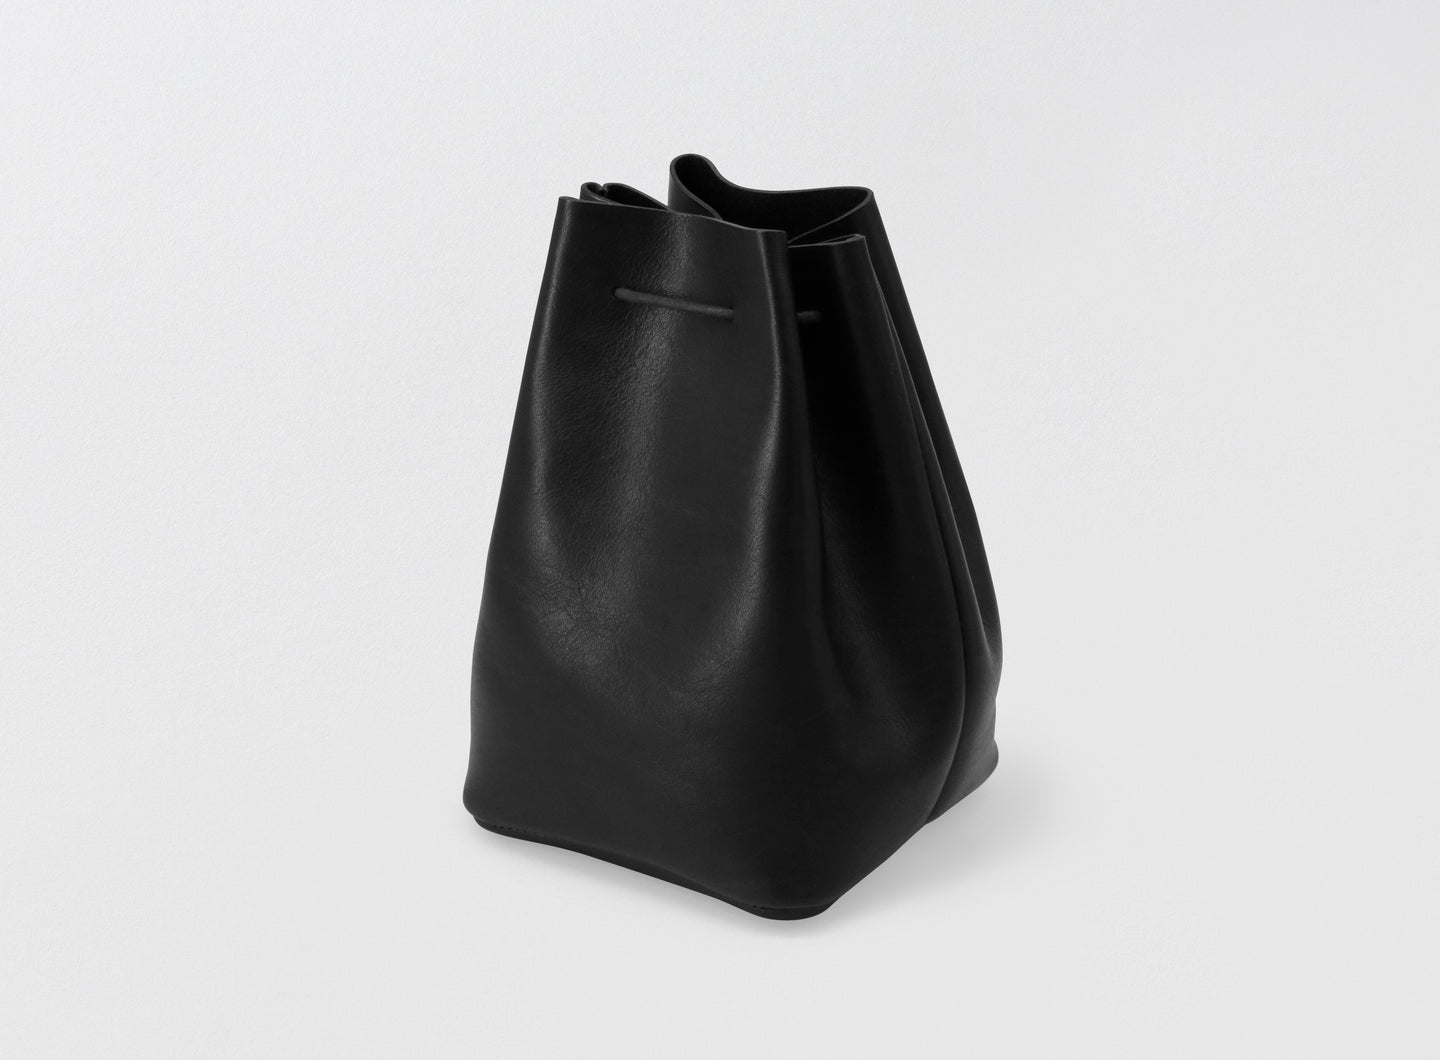 Square Drawstring bag